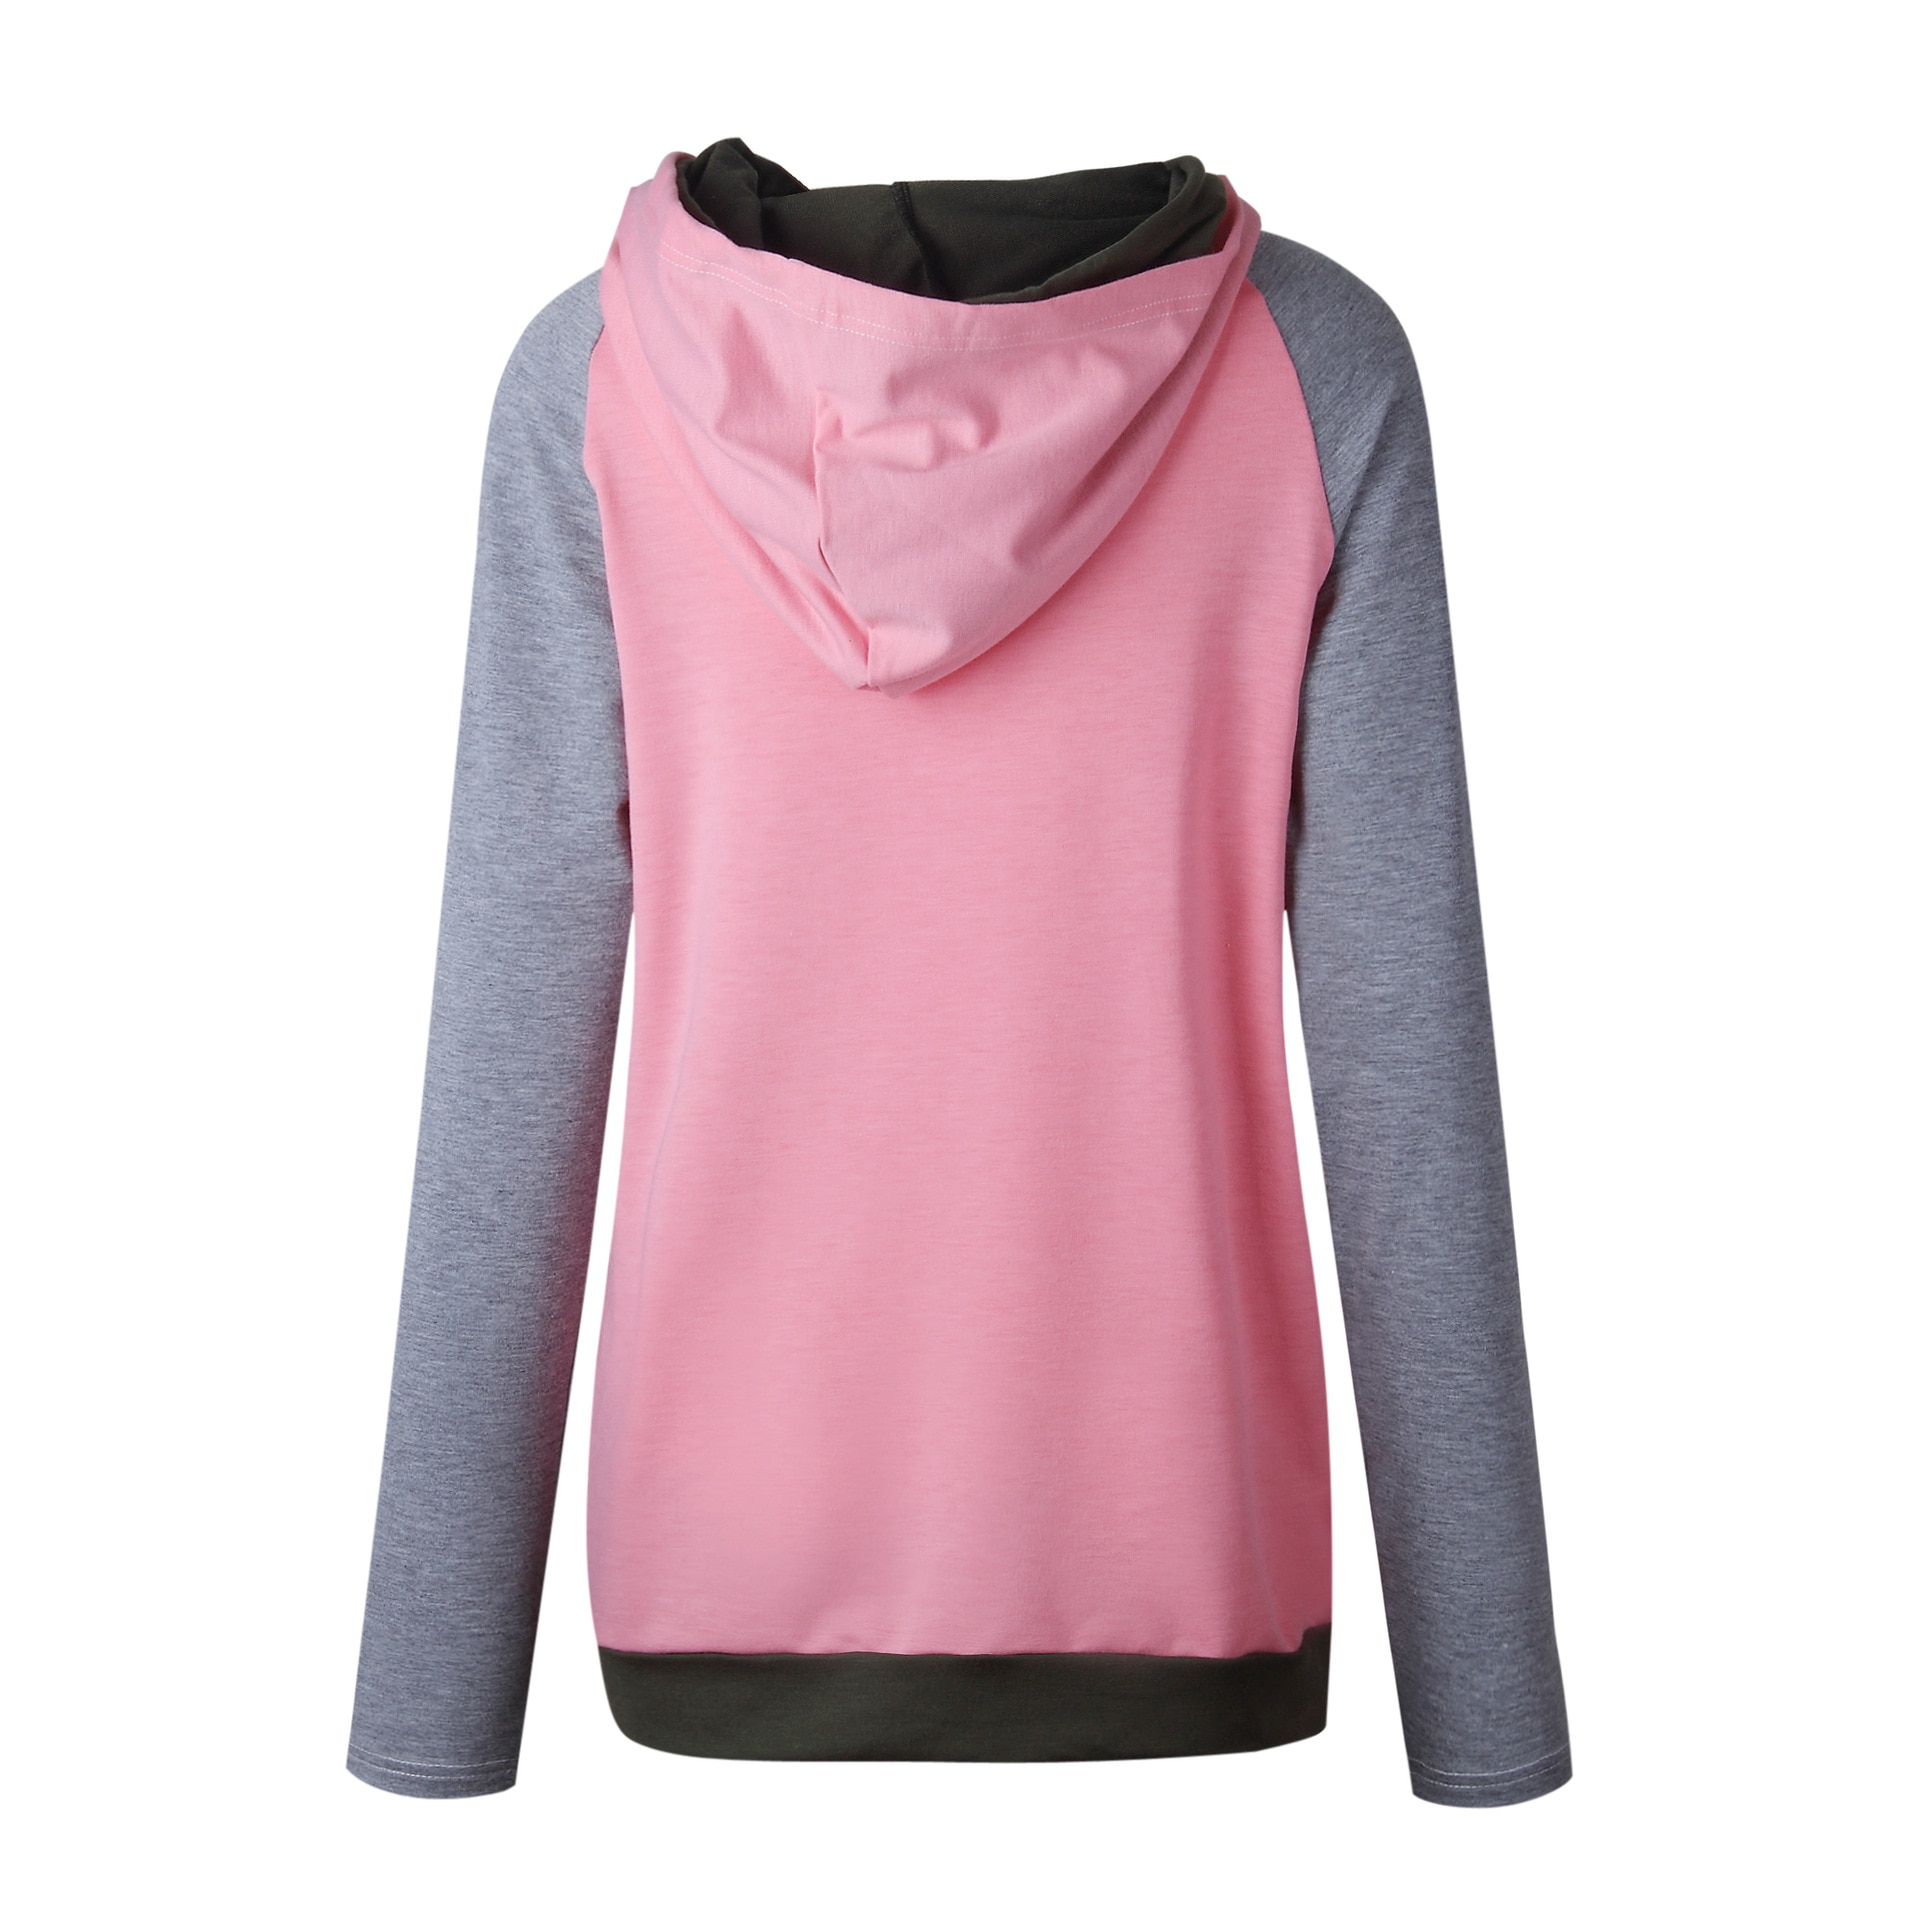 Women's Patchwork Striped Pullover Long Sleeve Hoodie, Tops With Pockets, Hooded Sweatshirt 22